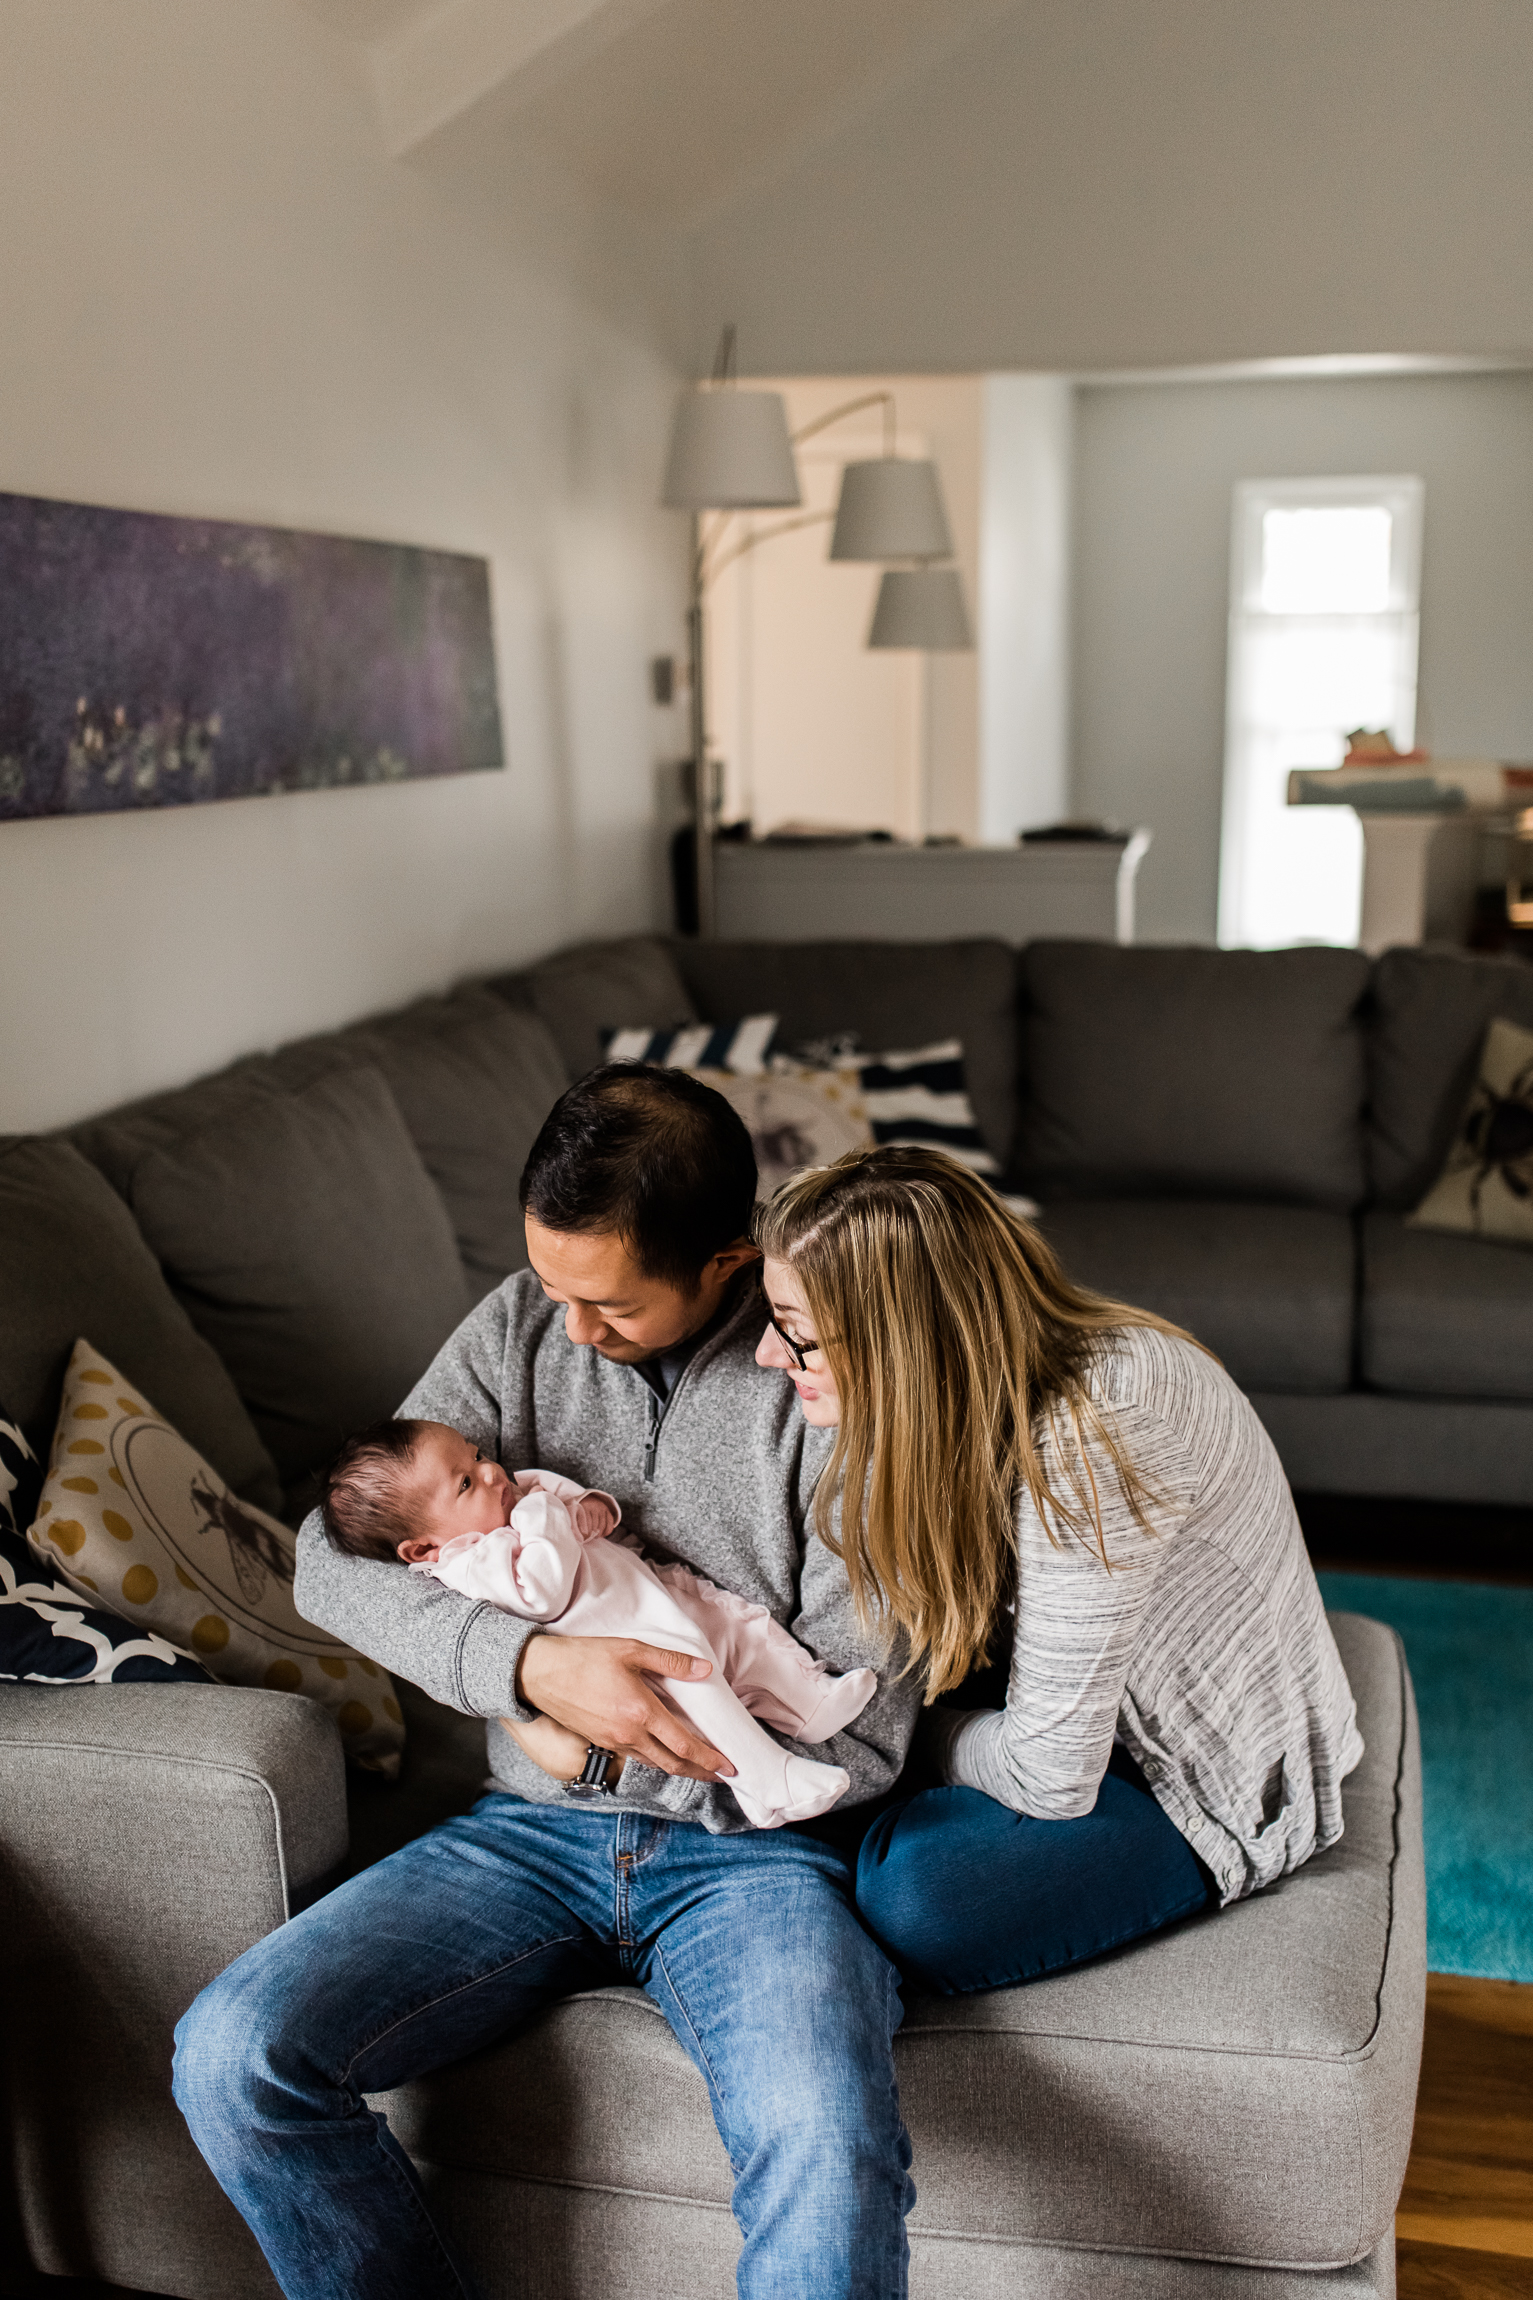 couple holding their newborn baby in the living room, Kansas City lifestyle newborn photographer, in-home newborn session